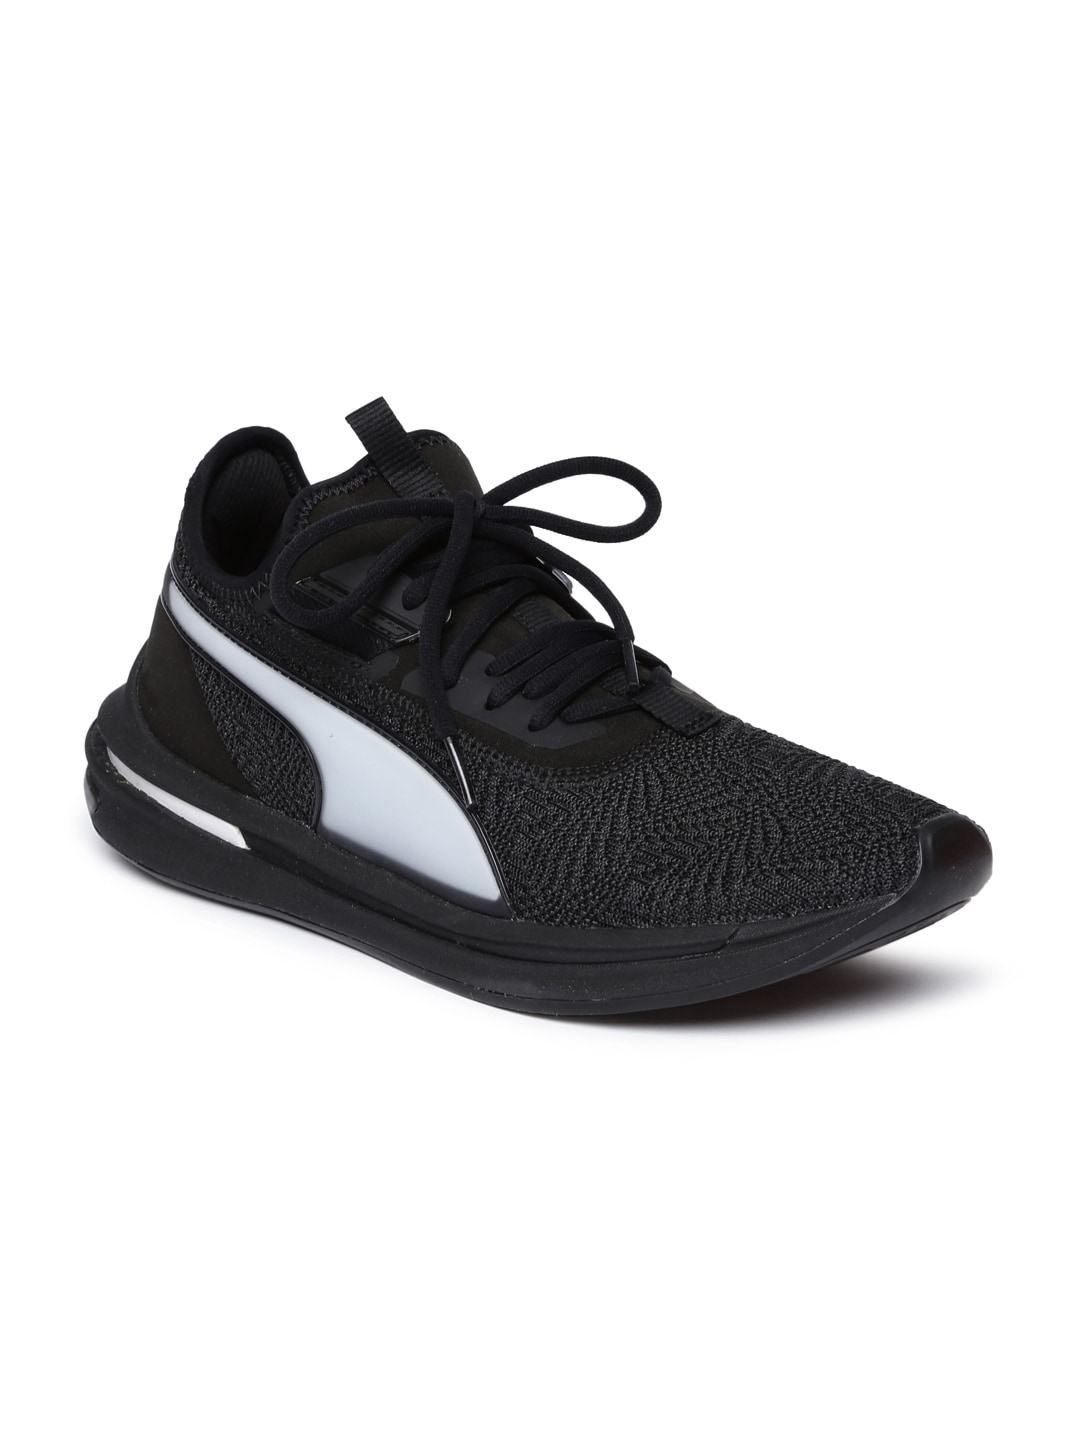 Puma Women Shoes - Buy Puma Women Shoes online in India 36b7d8fb1